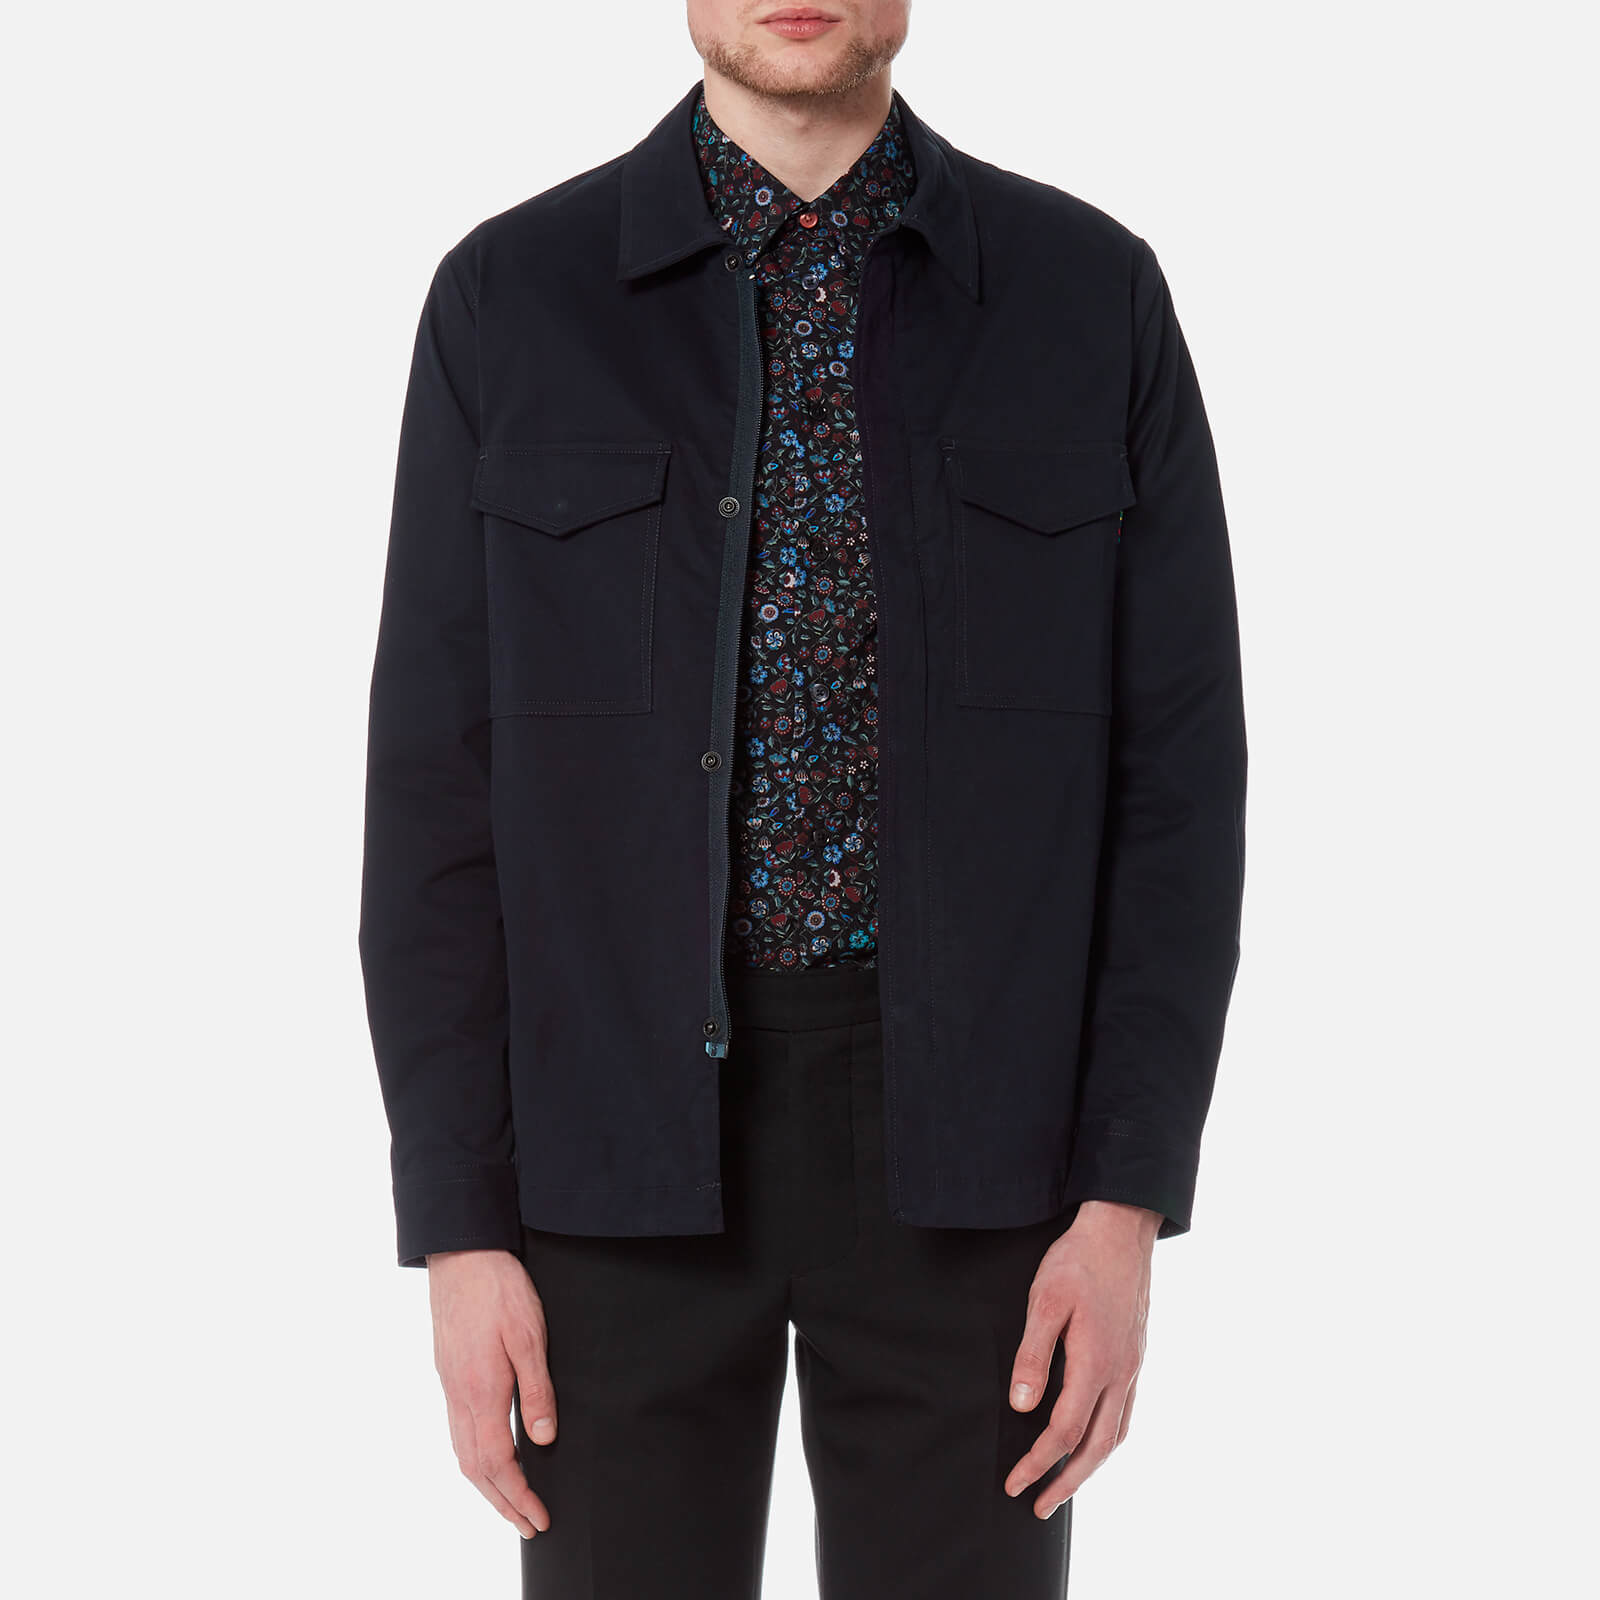 7dbb1cac6ed20 PS Paul Smith Men's Unlined Jacket - Navy - Free UK Delivery over £50